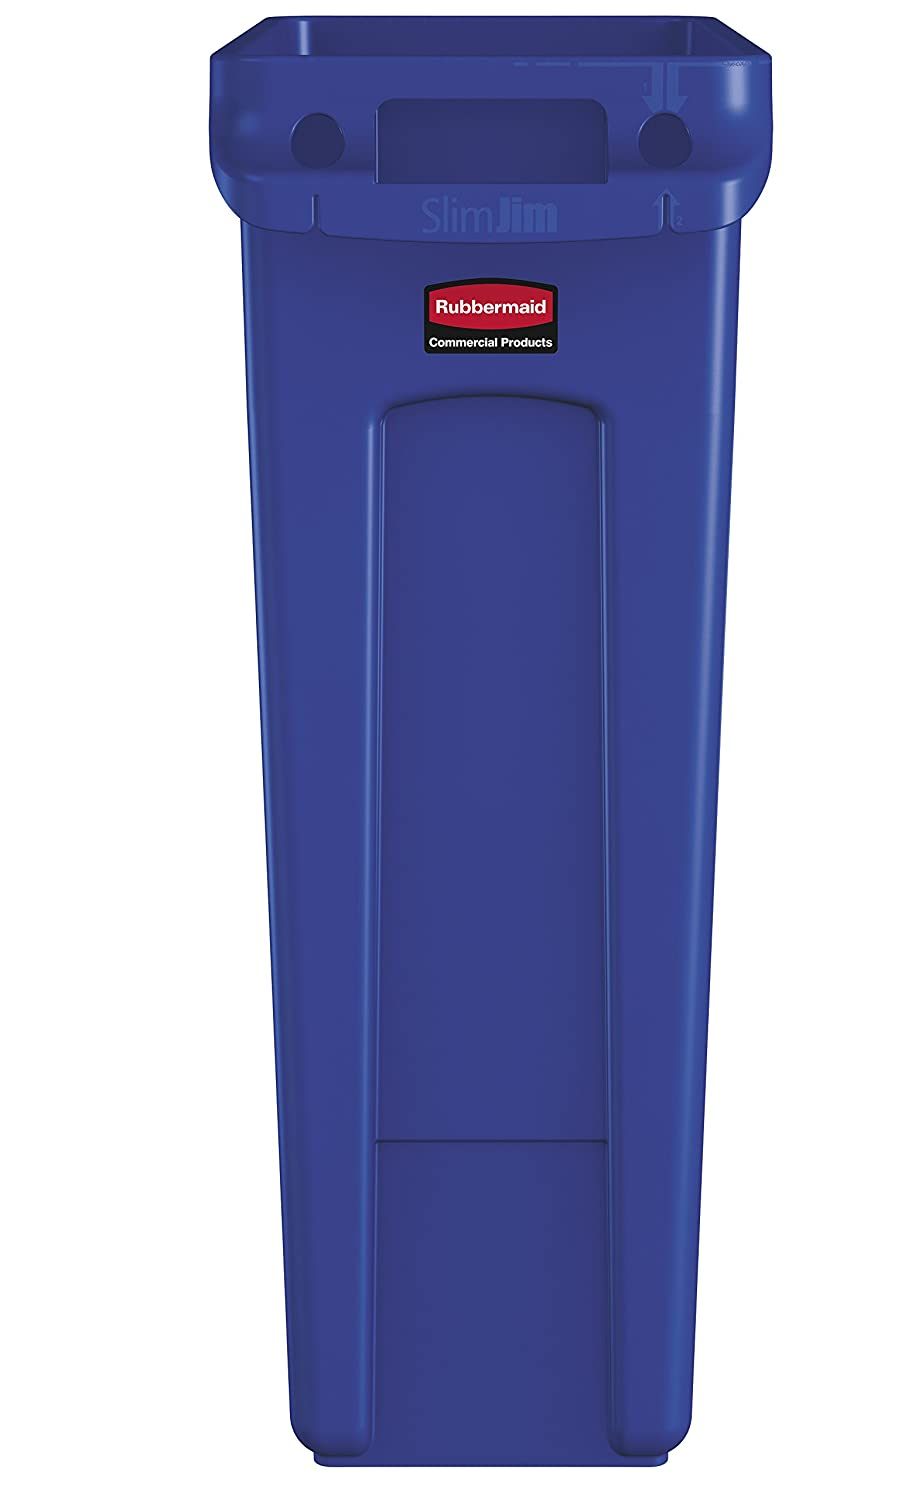 Rubbermaid Commercial Products Slim Jim Trash Can Waste Receptacle with Venting Channels, 23 Gallons, Blue (1956185)